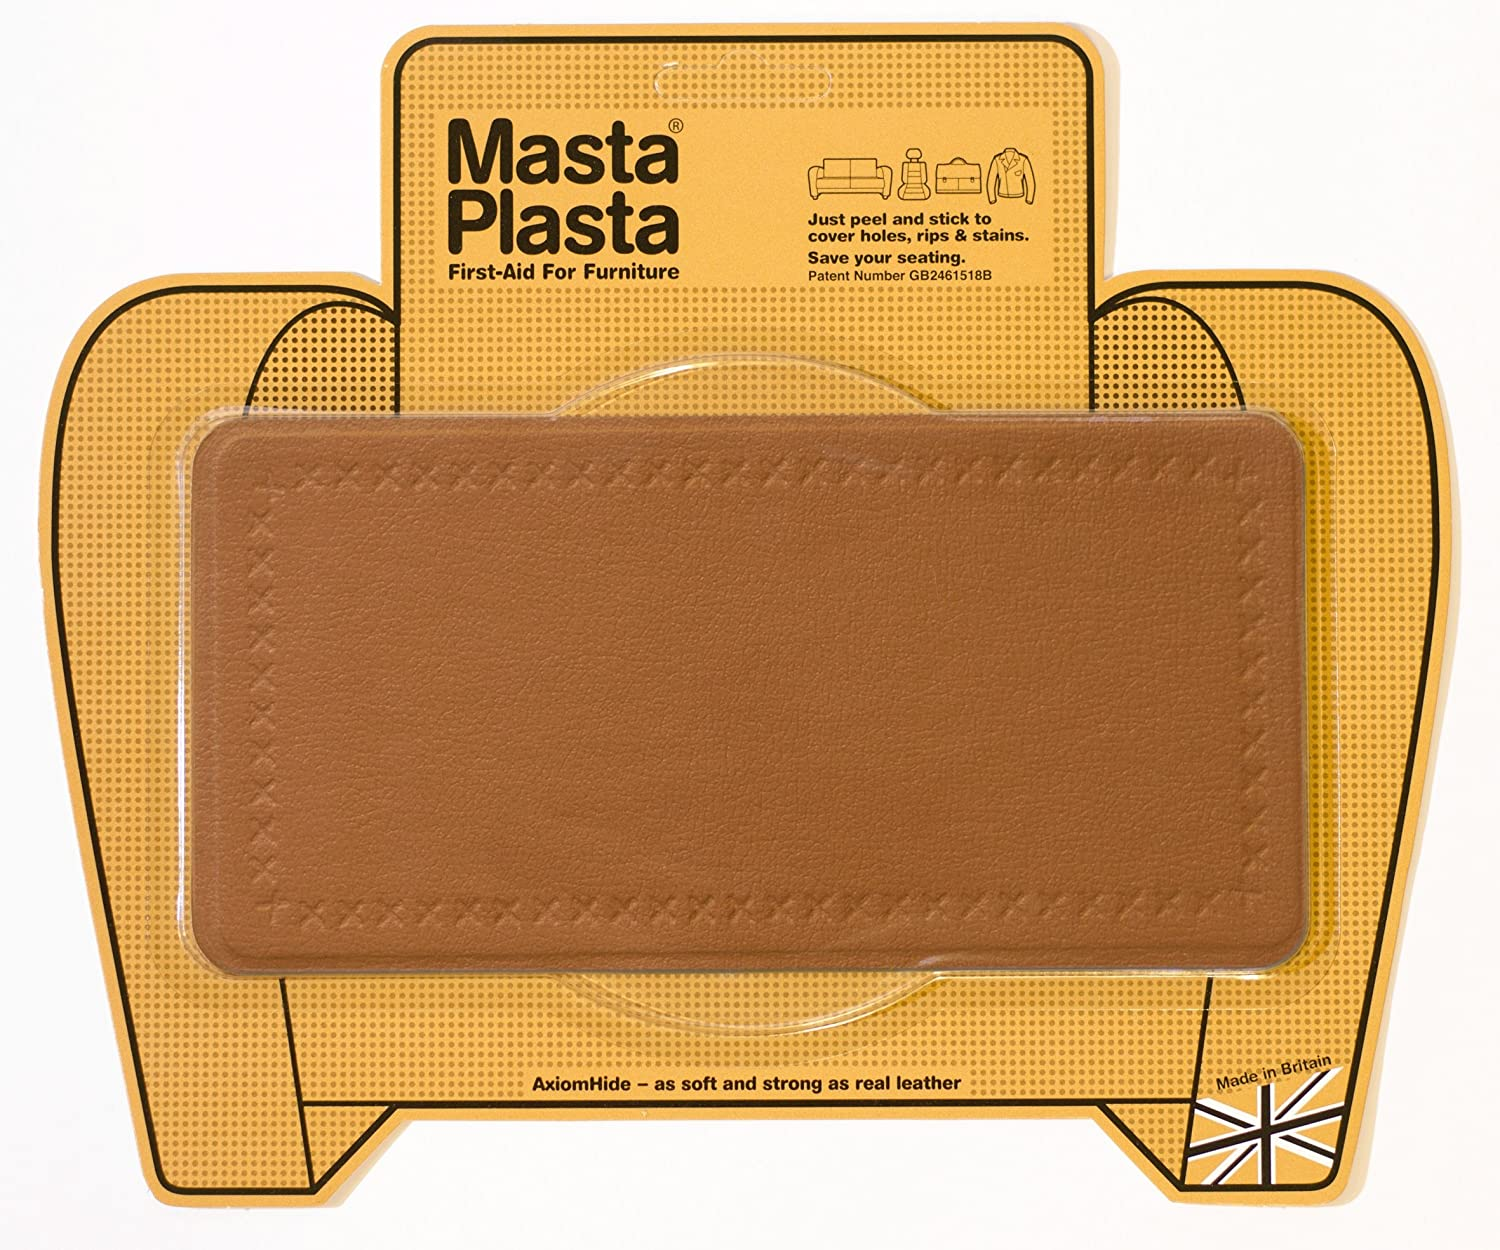 how to repair small hole in leather sofa brown color aid peel stick mastaplasta patch for holes